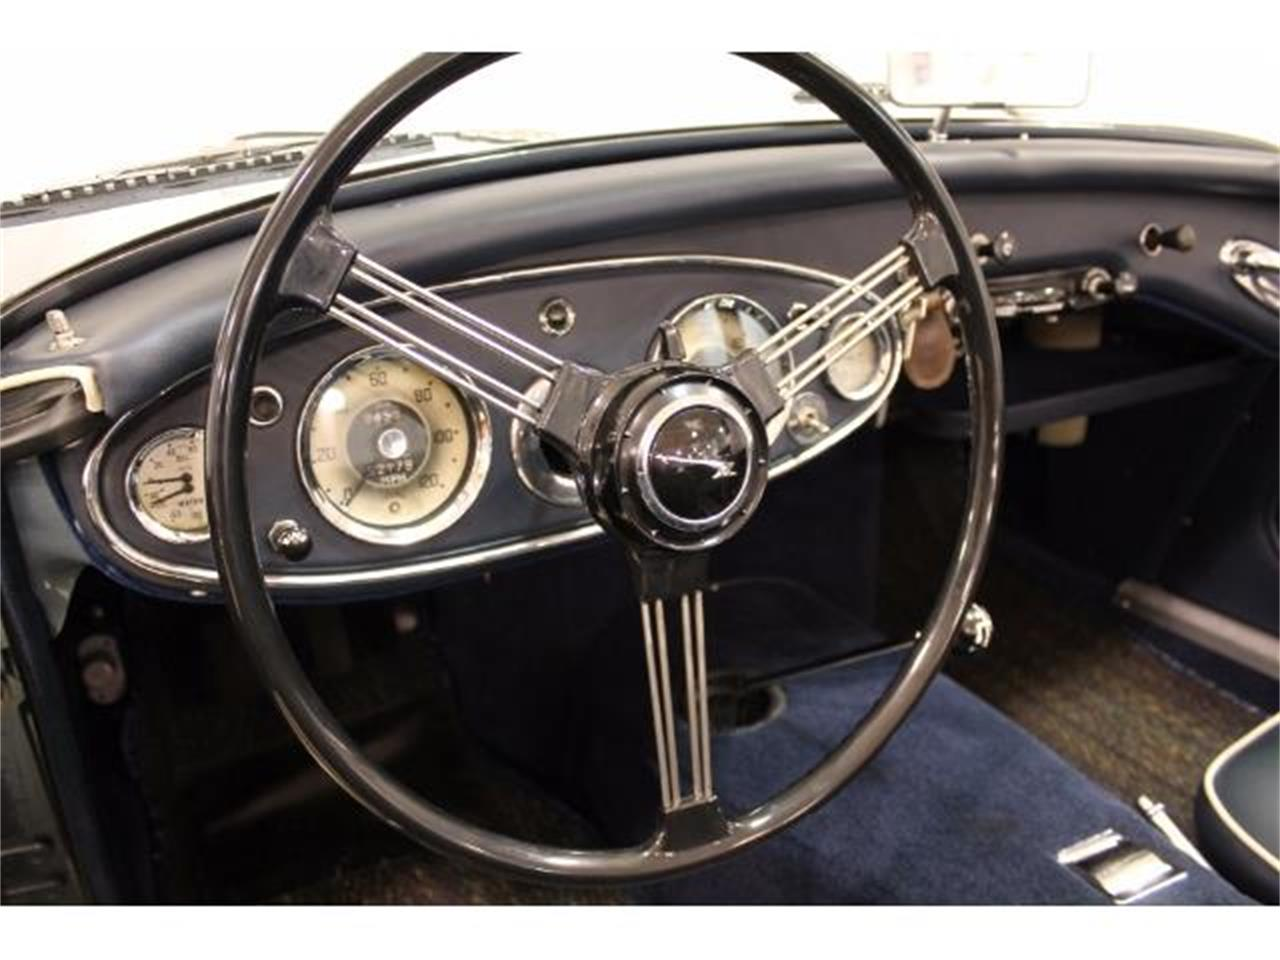 Sweet Cars Fort Wayne In >> 1961 Austin Healey 3000Mark I BT7 for Sale | ClassicCars ...